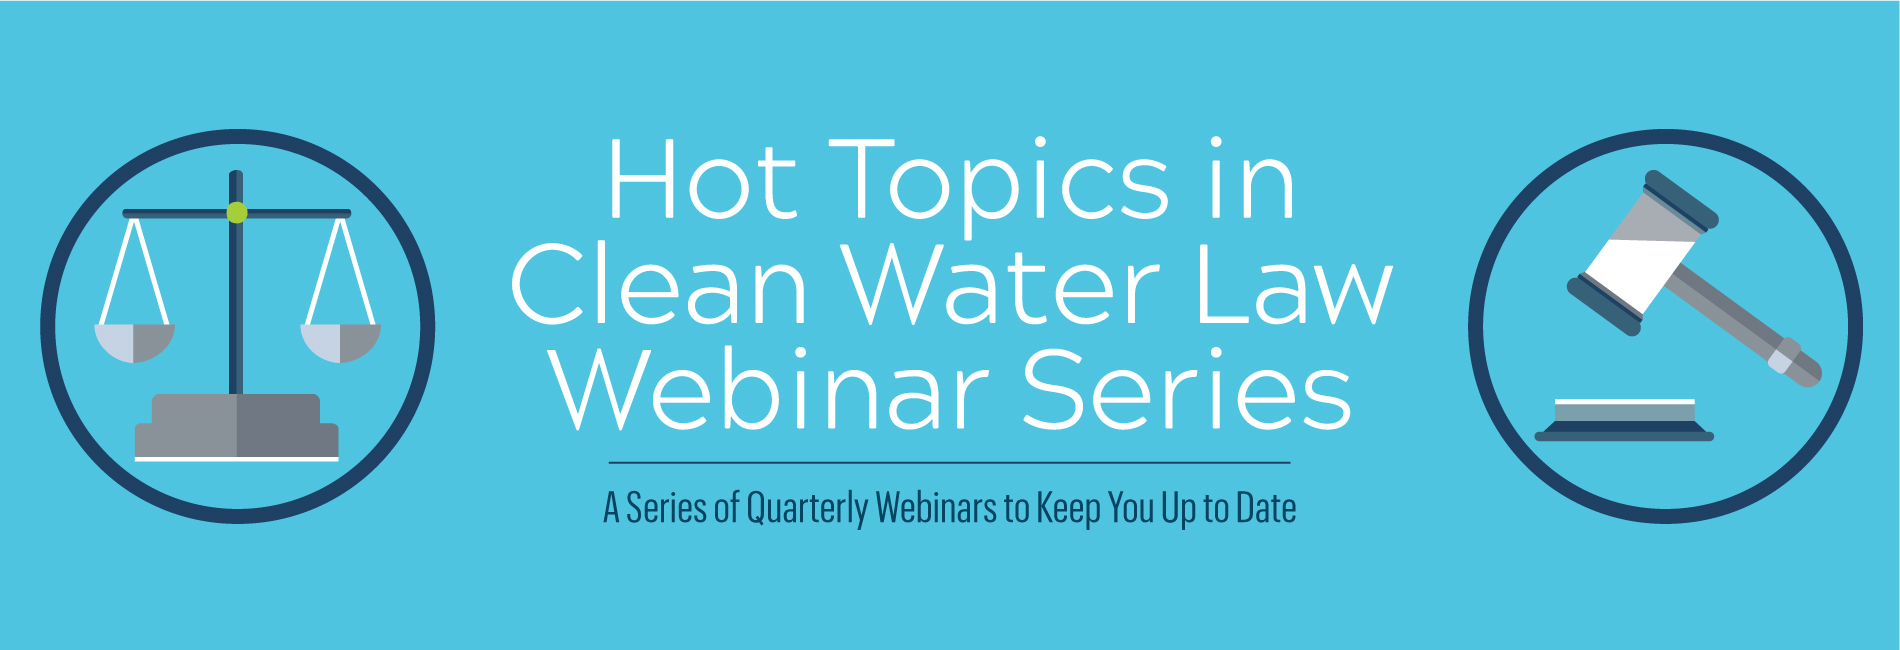 Hot Topics in Clean Water Law